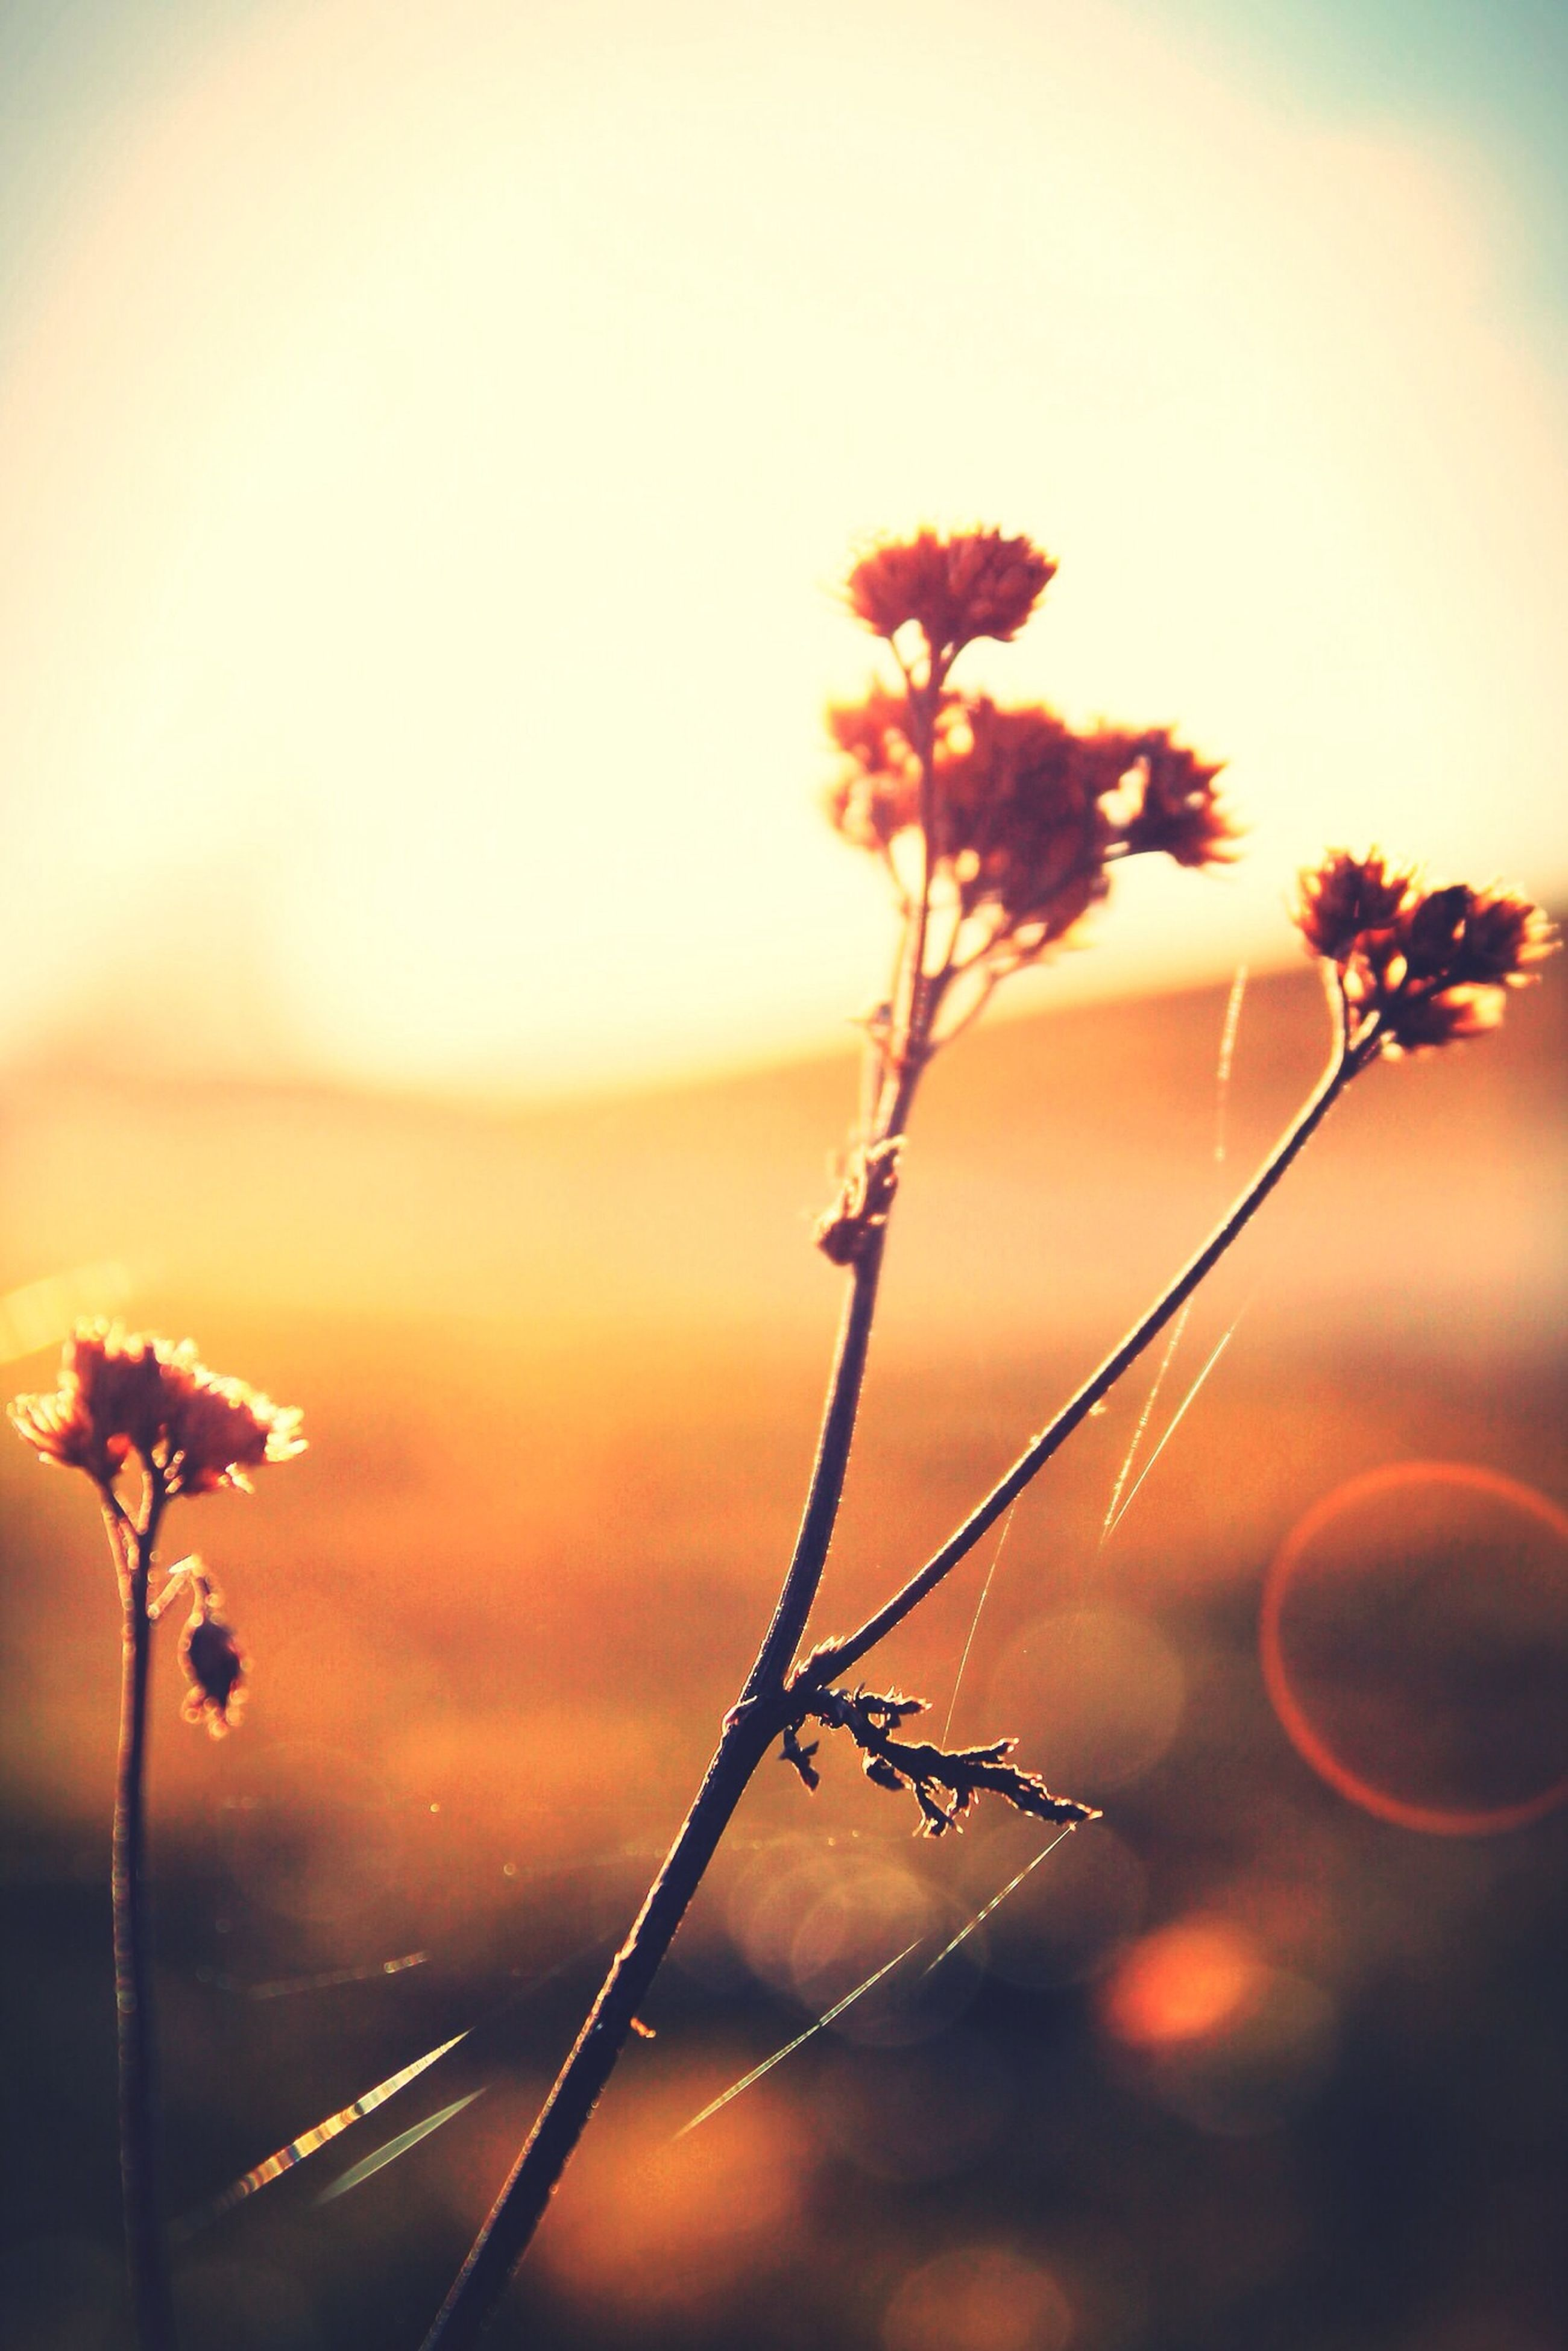 sunset, focus on foreground, beauty in nature, nature, growth, close-up, plant, fragility, orange color, stem, sun, tranquility, selective focus, sky, flower, freshness, silhouette, outdoors, twig, no people